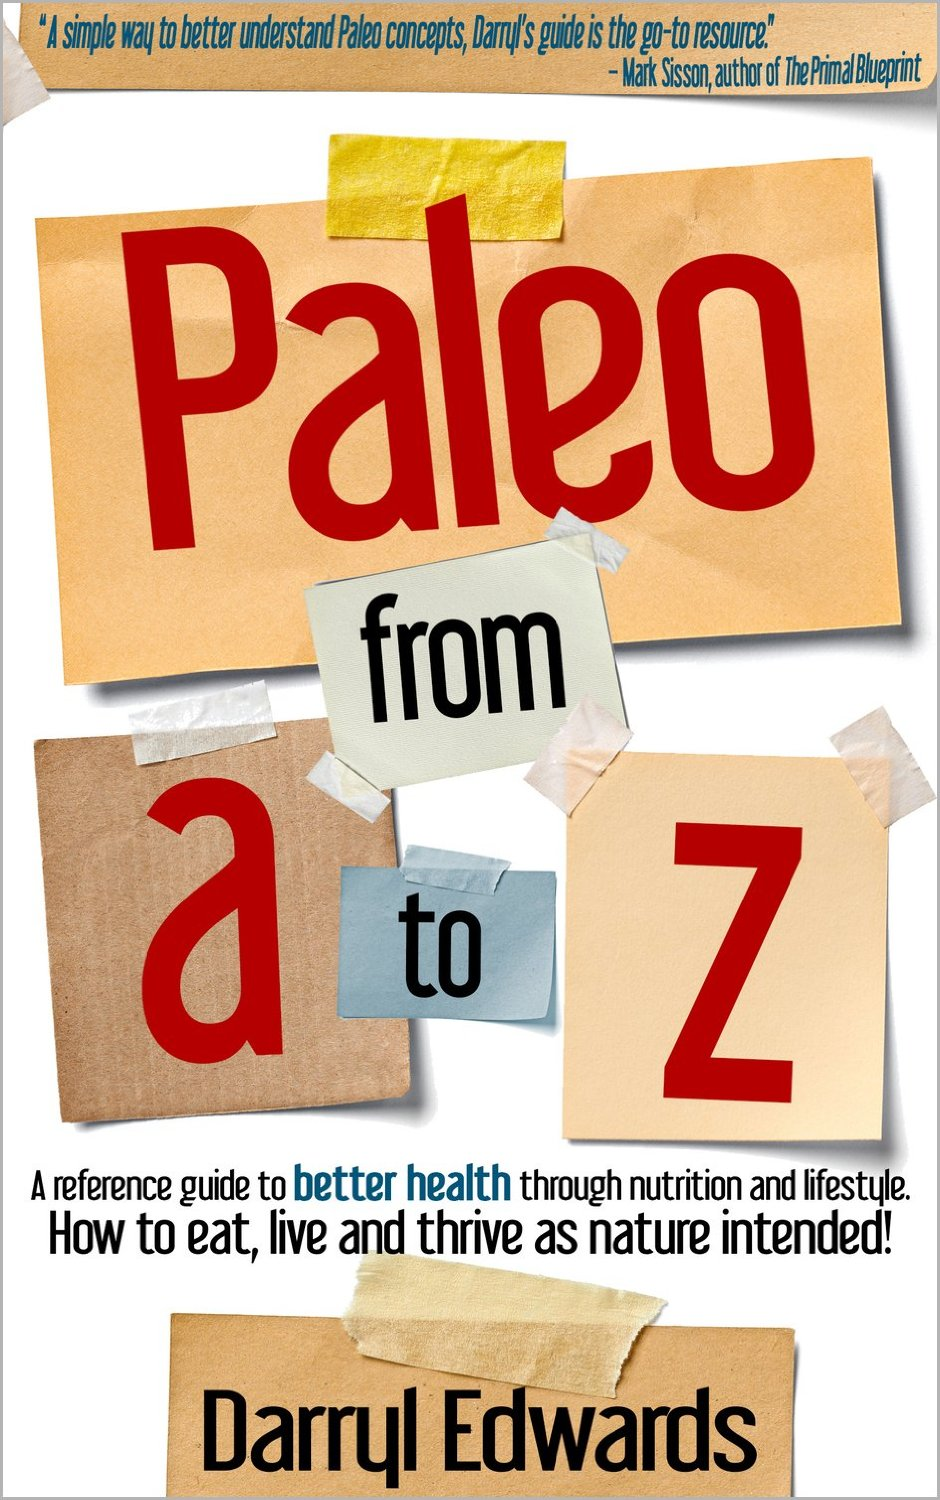 Paleo from A to Z book